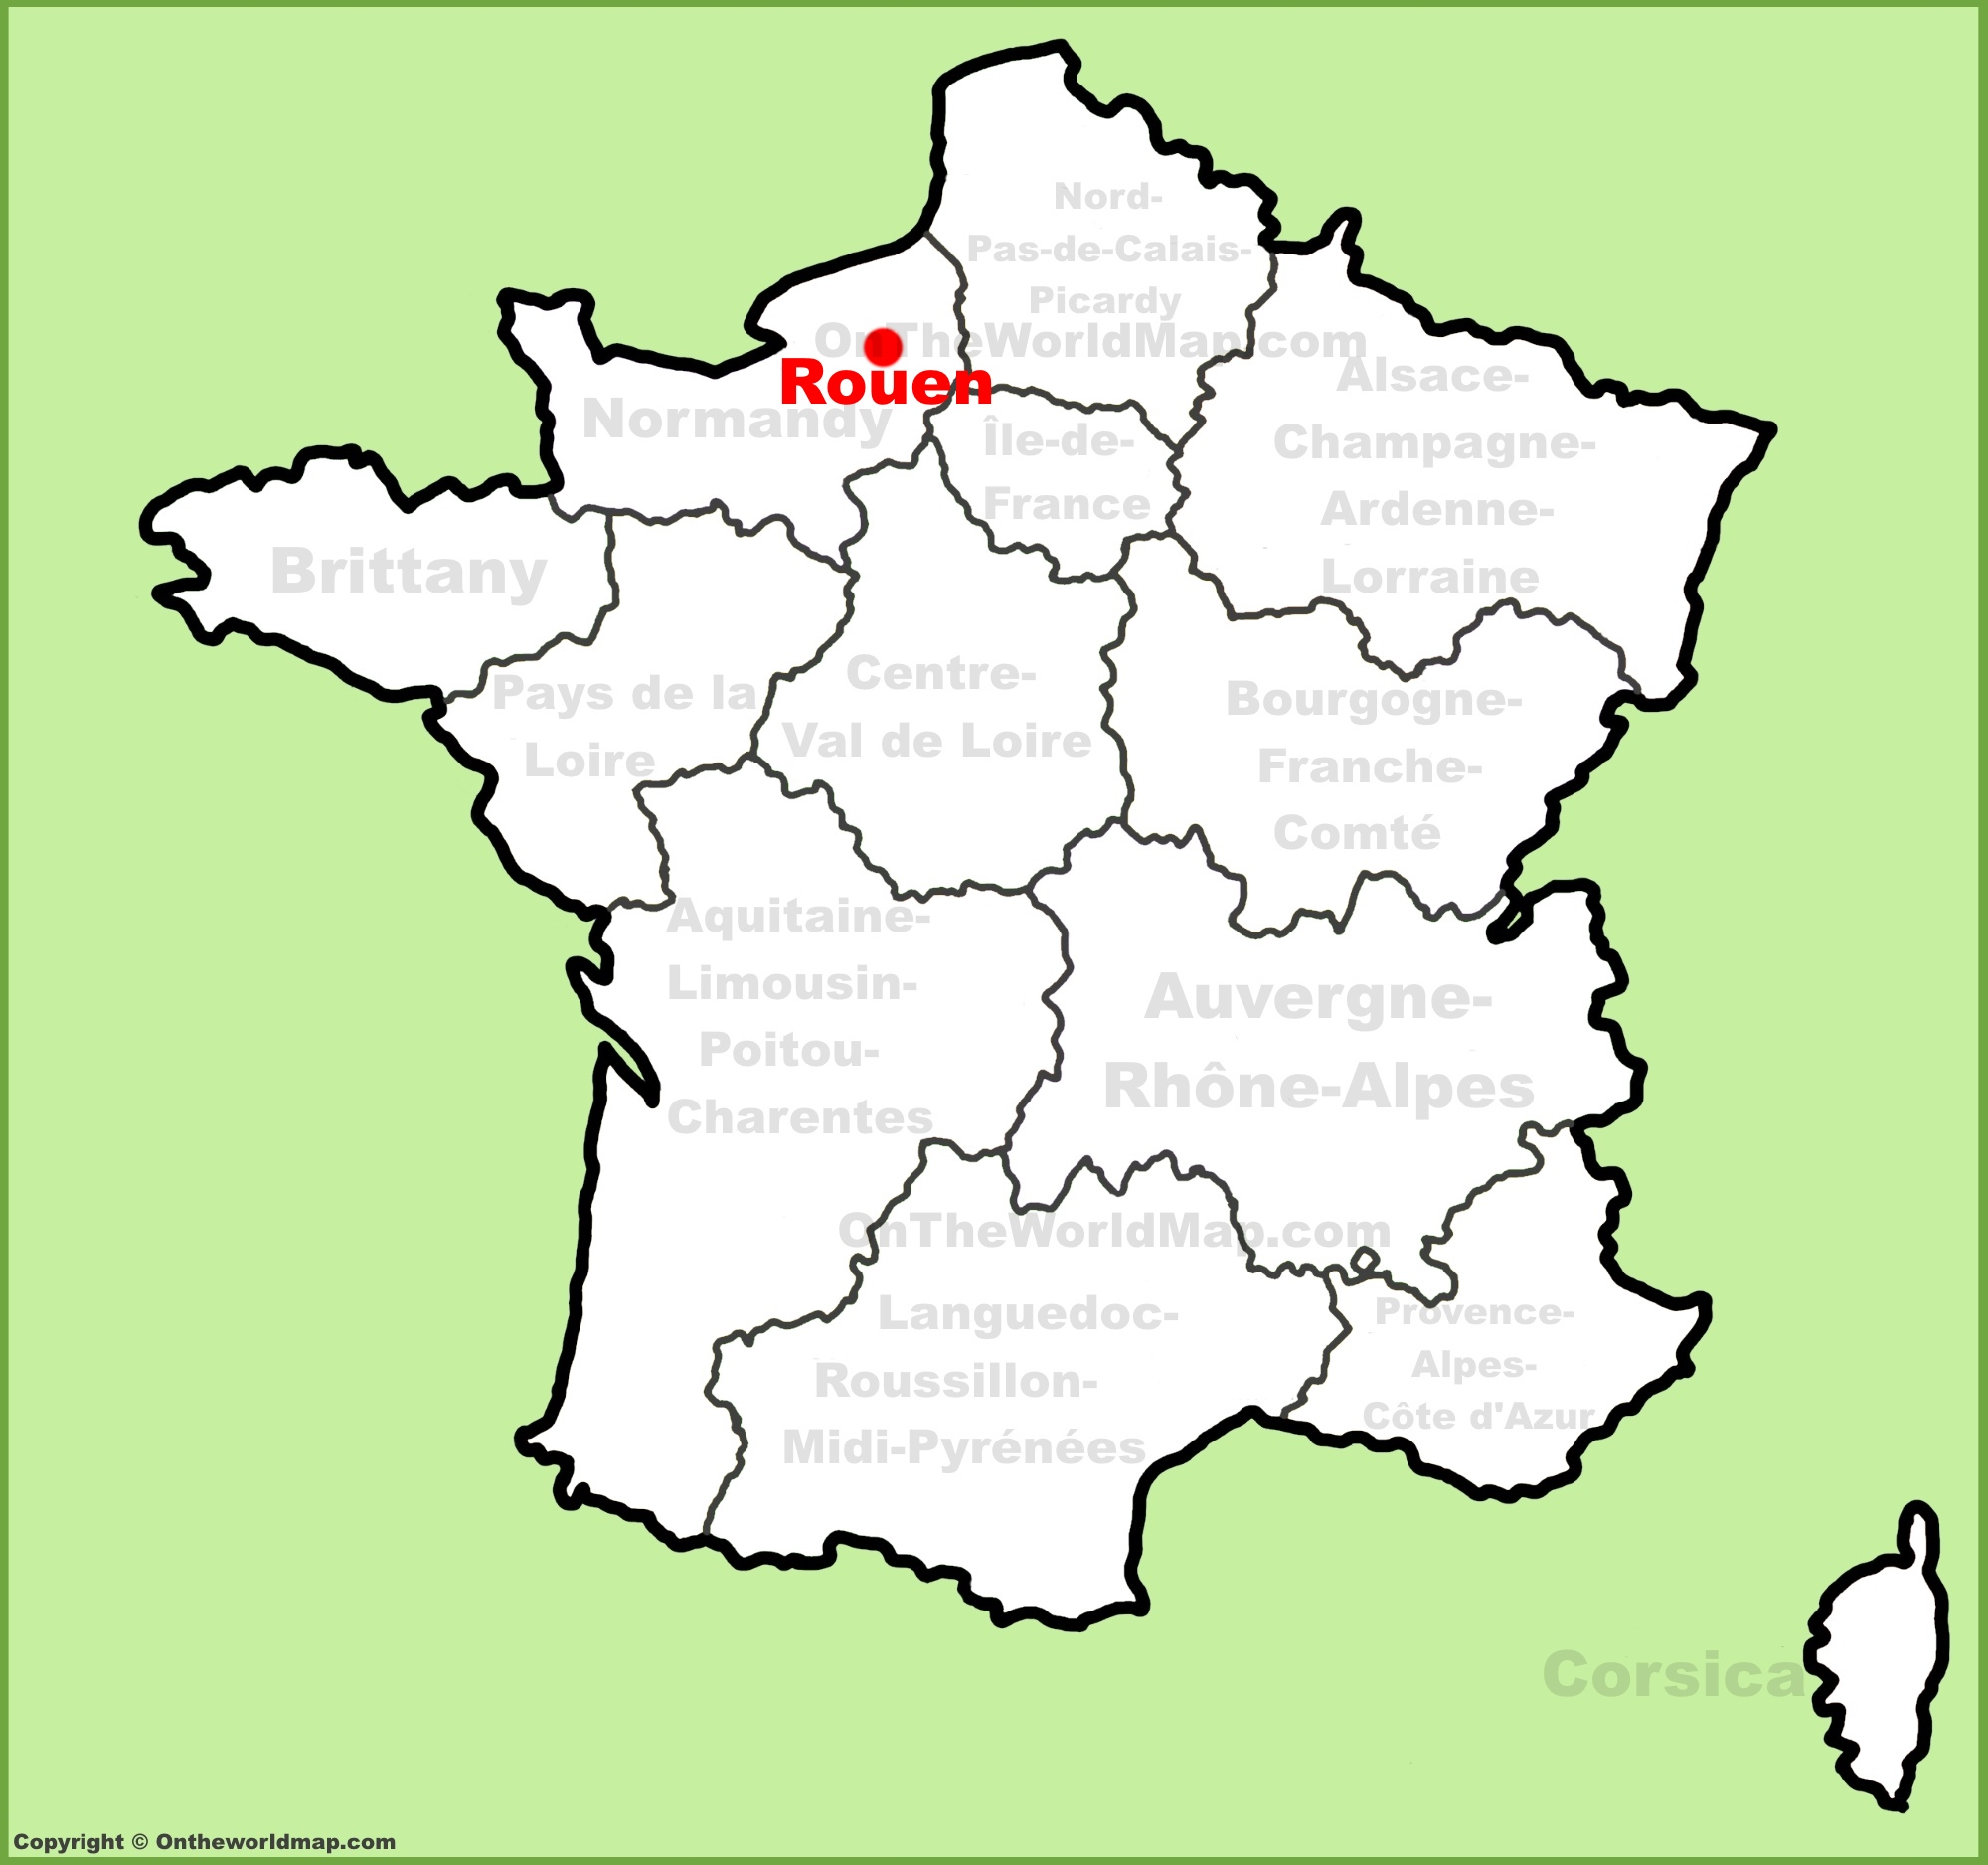 Rouen location on the France map